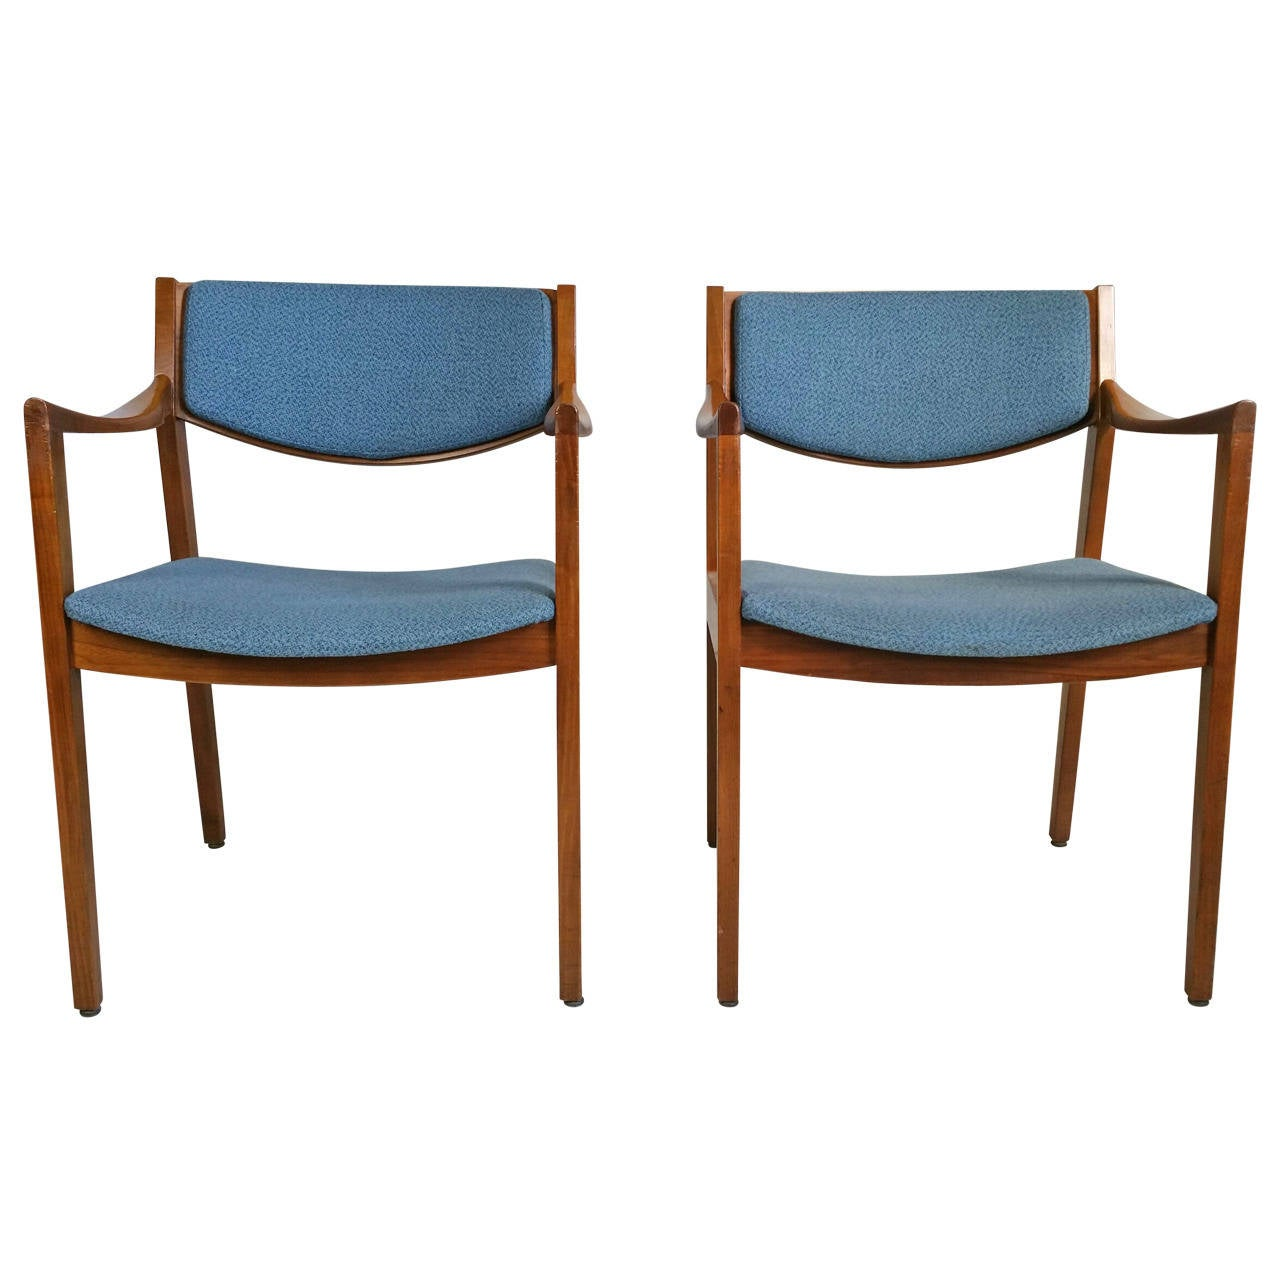 Mid Century Modern Style Chairs Pair Of Midcentury Modern Gunlock Arm Chairs In The Jens Risom